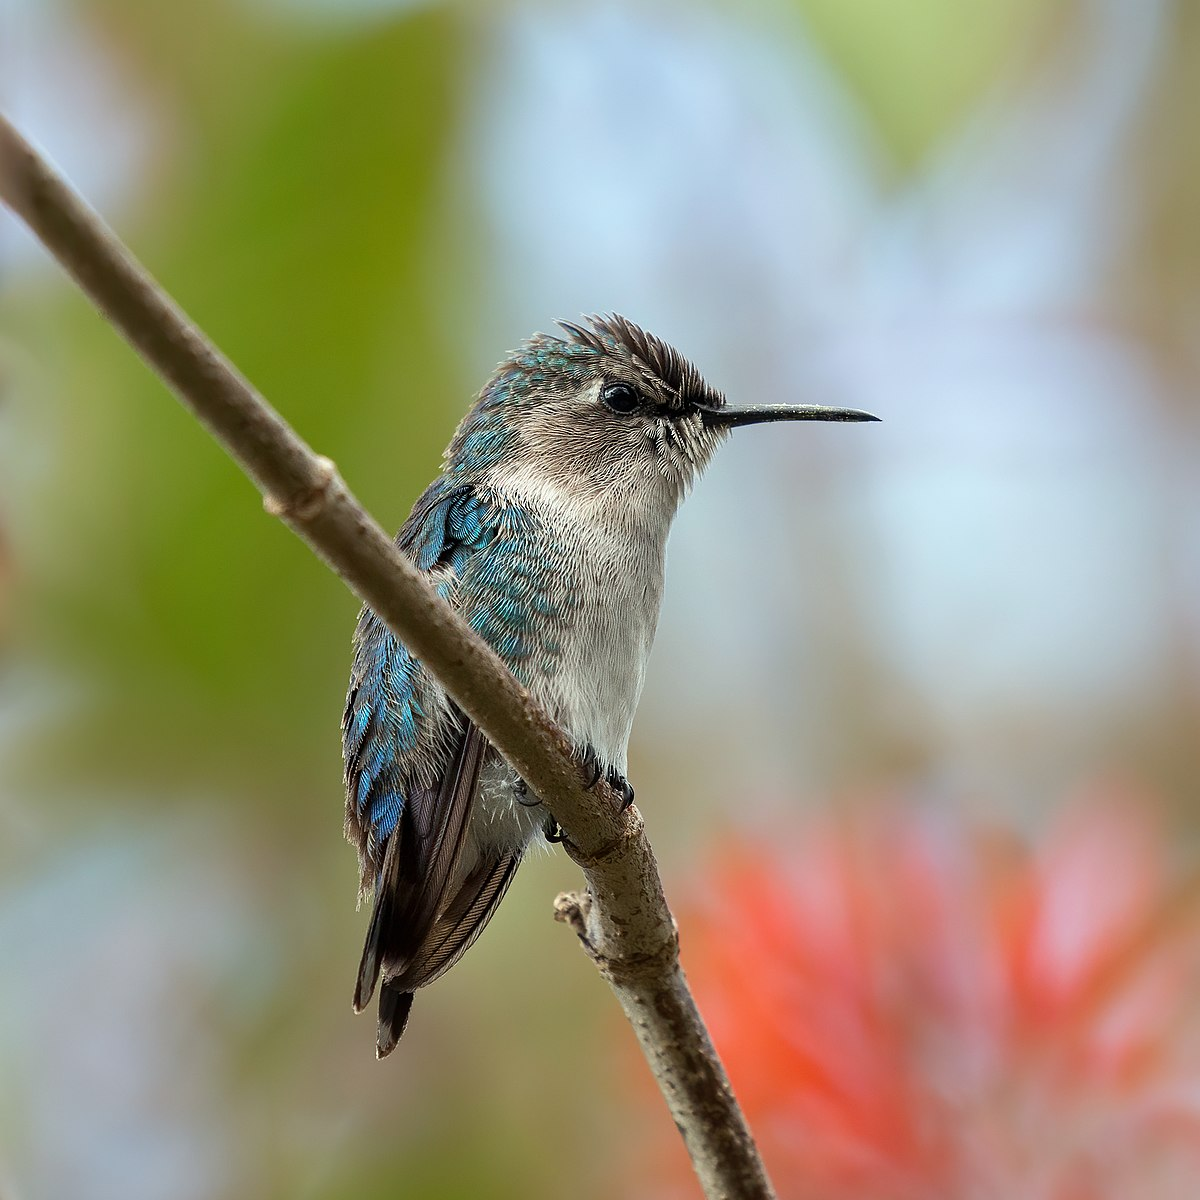 https://upload.wikimedia.org/wikipedia/commons/thumb/b/bf/Bee_hummingbird_%28Mellisuga_helenae%29_immature_male.jpg/1200px-Bee_hummingbird_%28Mellisuga_helenae%29_immature_male.jpg